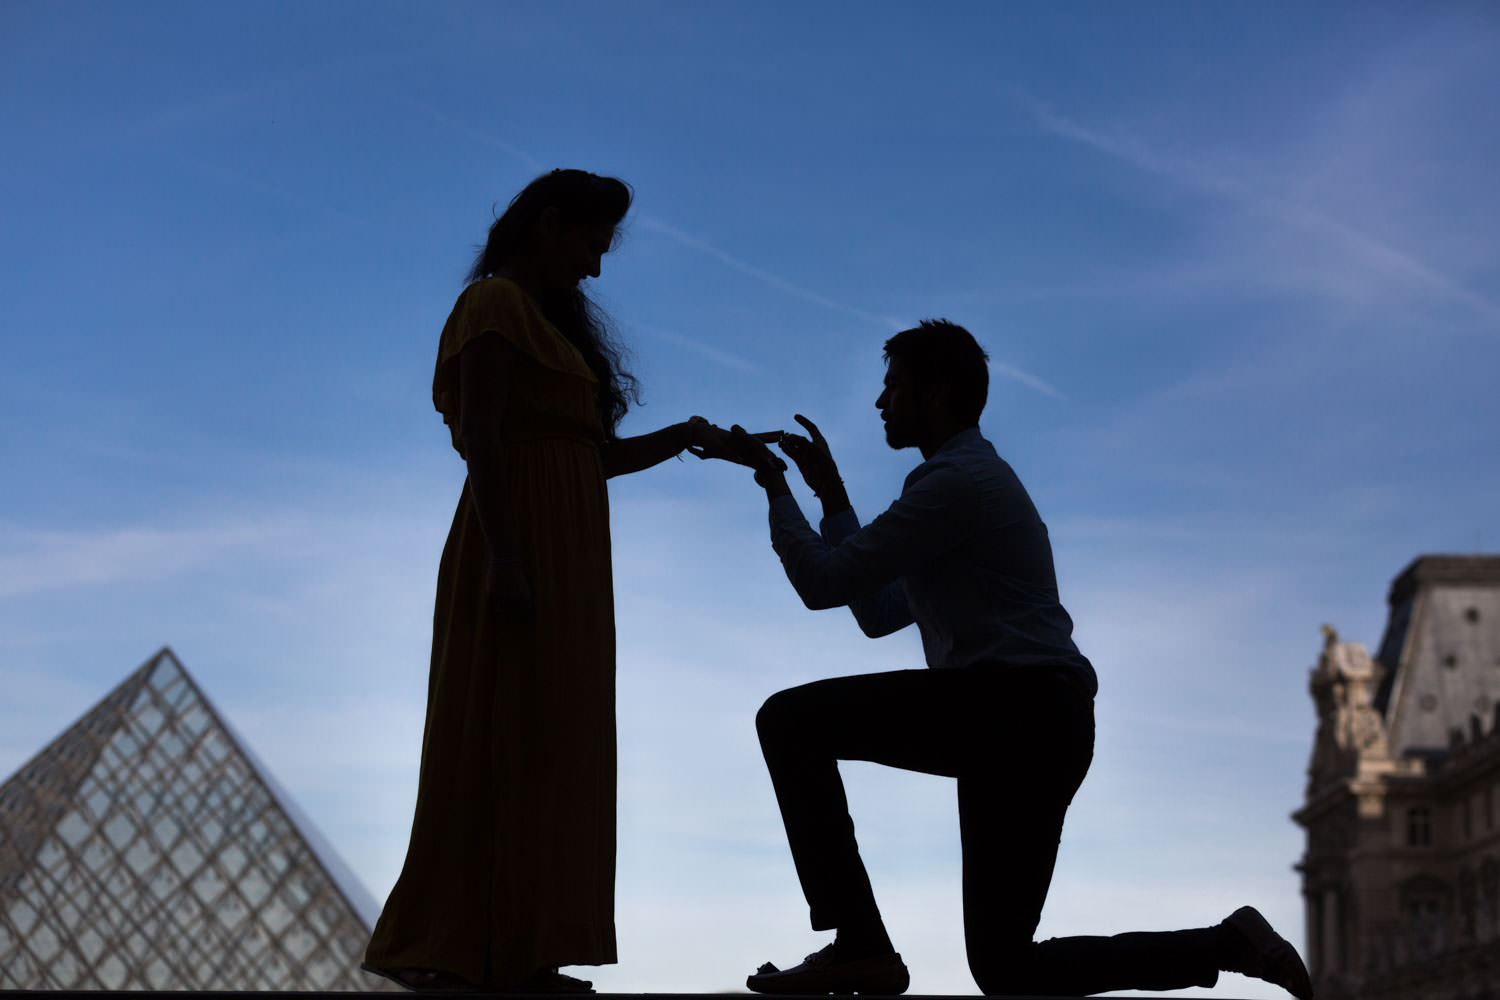 sihouette proposal at le louvre